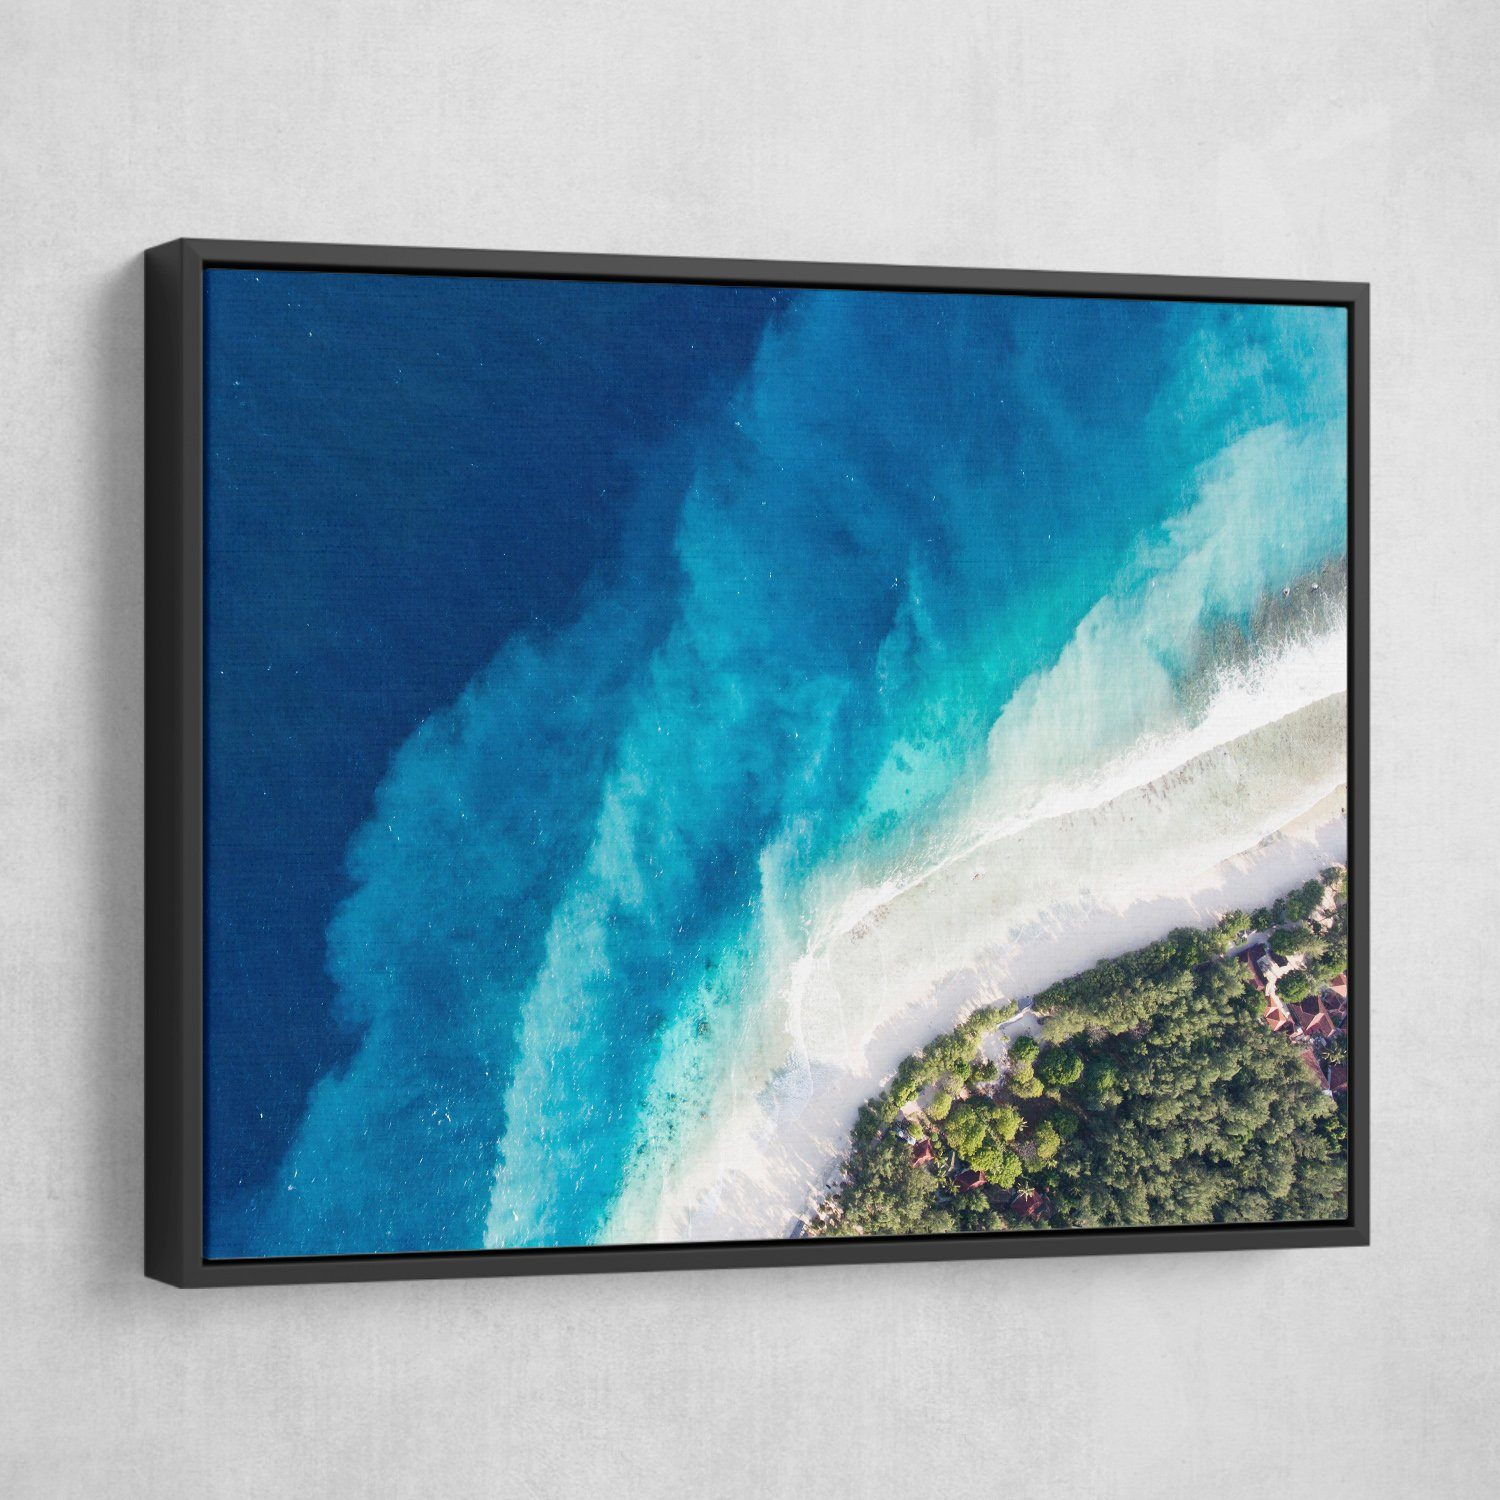 Top of the seabed wall art black frame